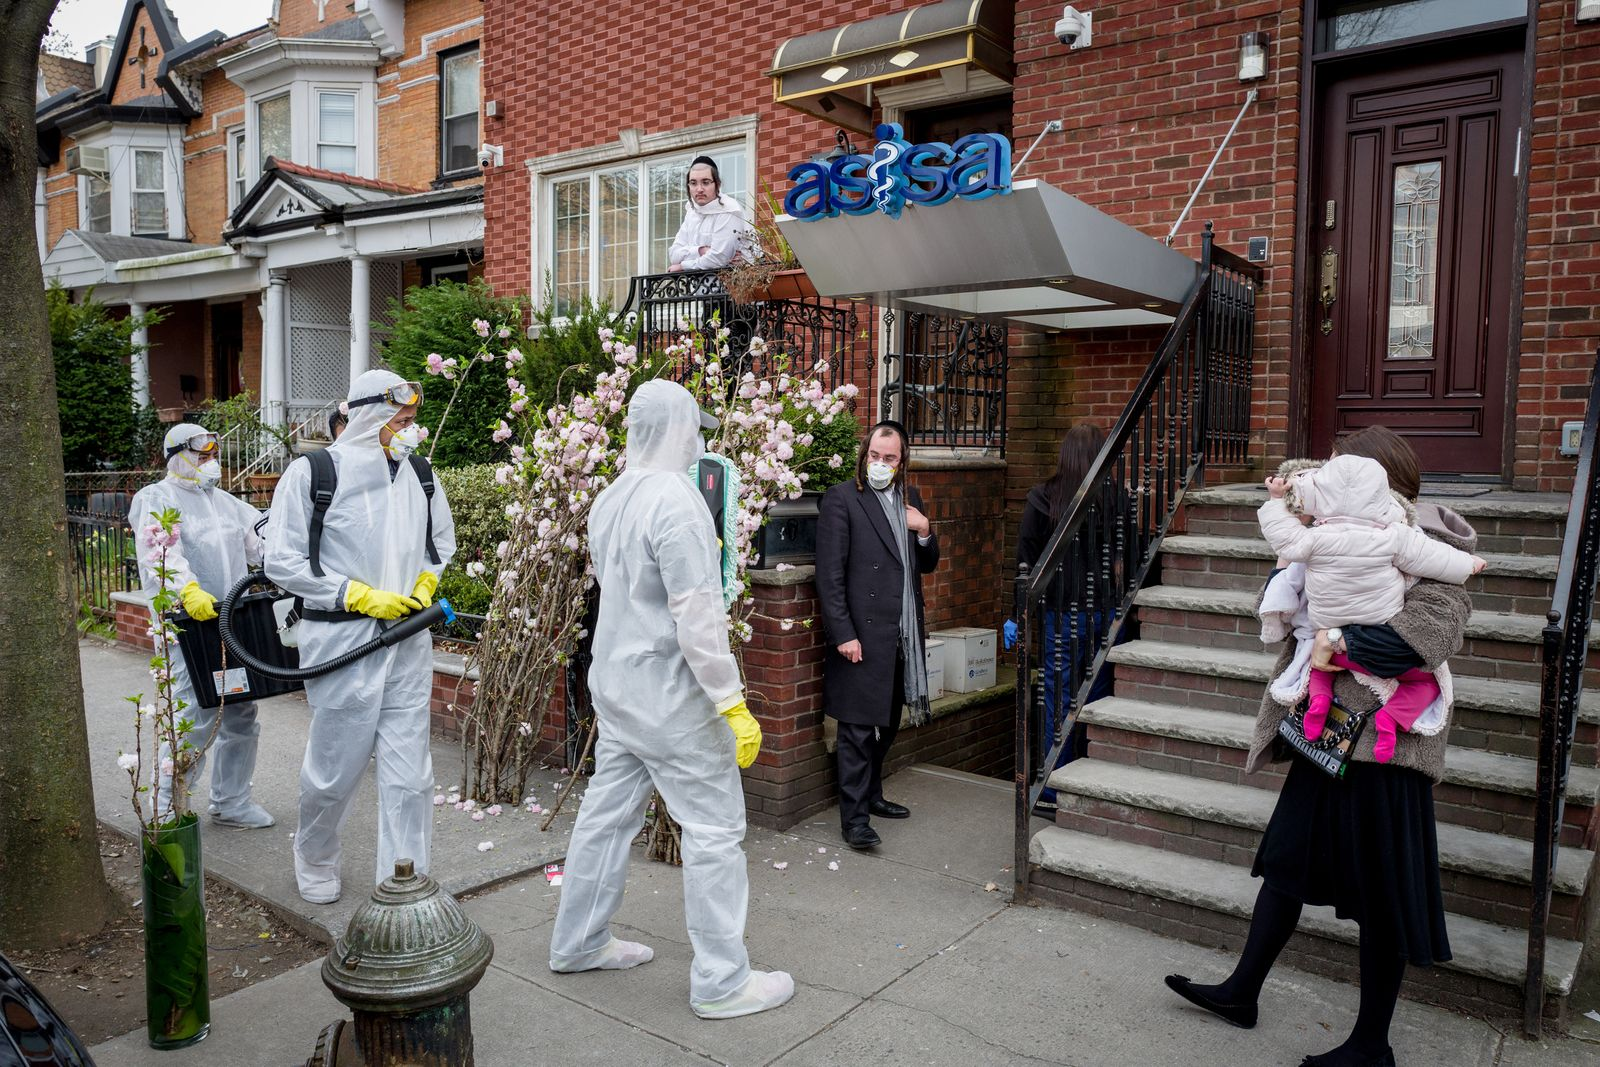 An urgent care clinic in the Borough Park section of Brooklyn on Wednesday, March 18, 2020, as a cleaning crew arrived before opening as a preventive measure against the spread of the coronavirus. (Jonah Markowitz/The New York Times)